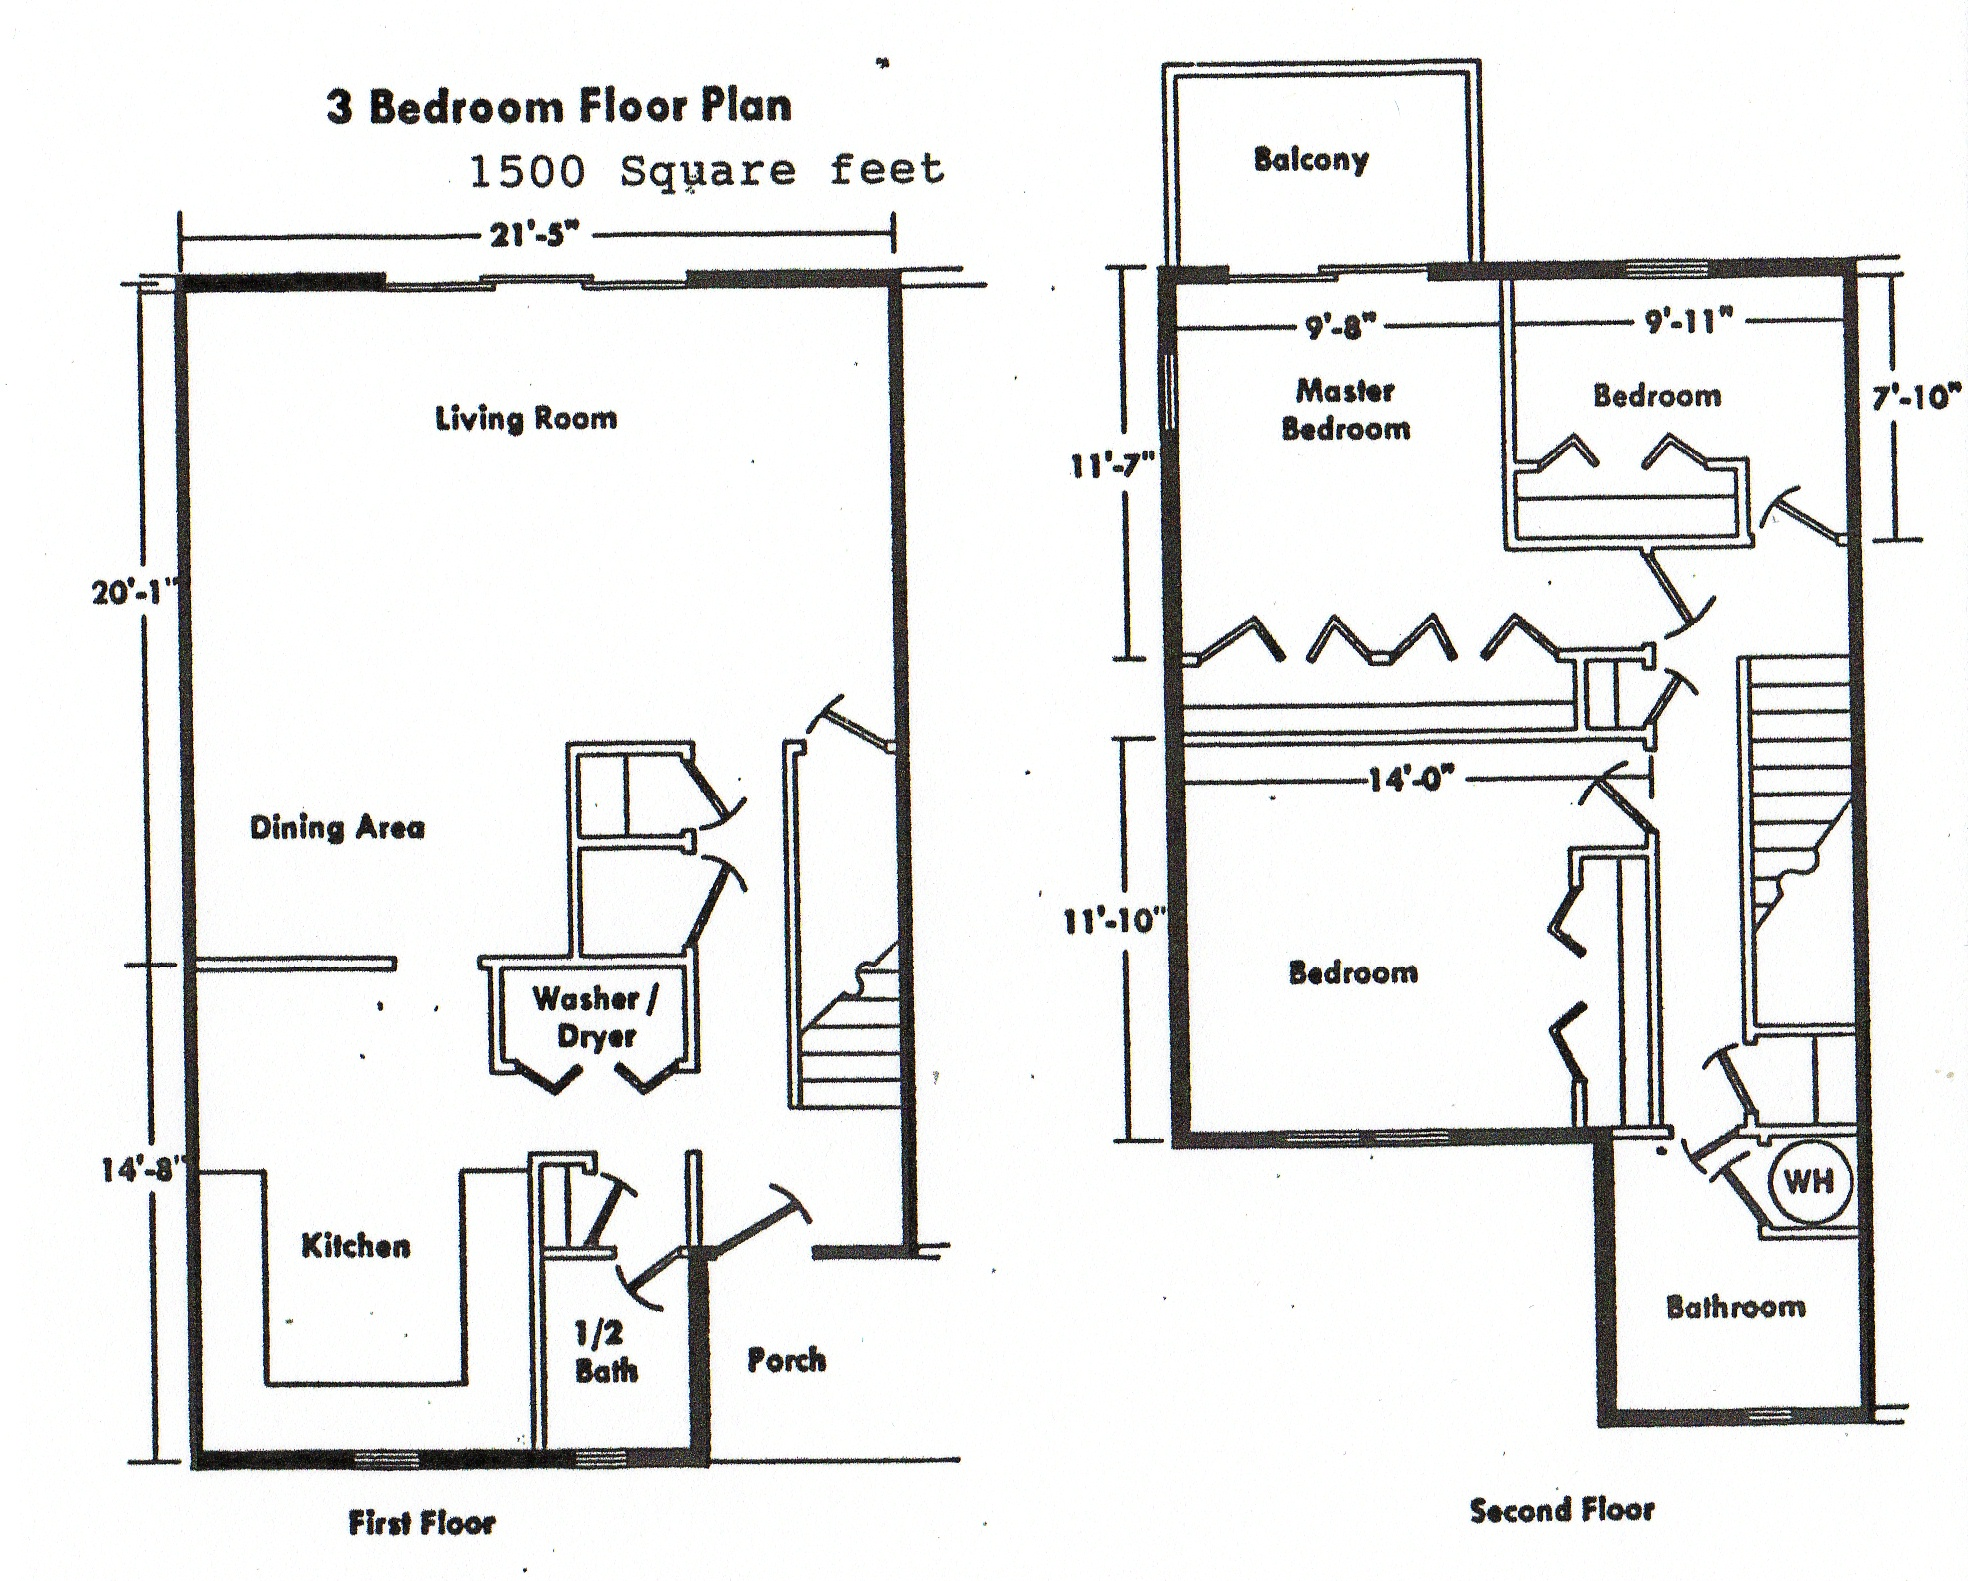 Home ideas Floor plan of a 3 bedroom house